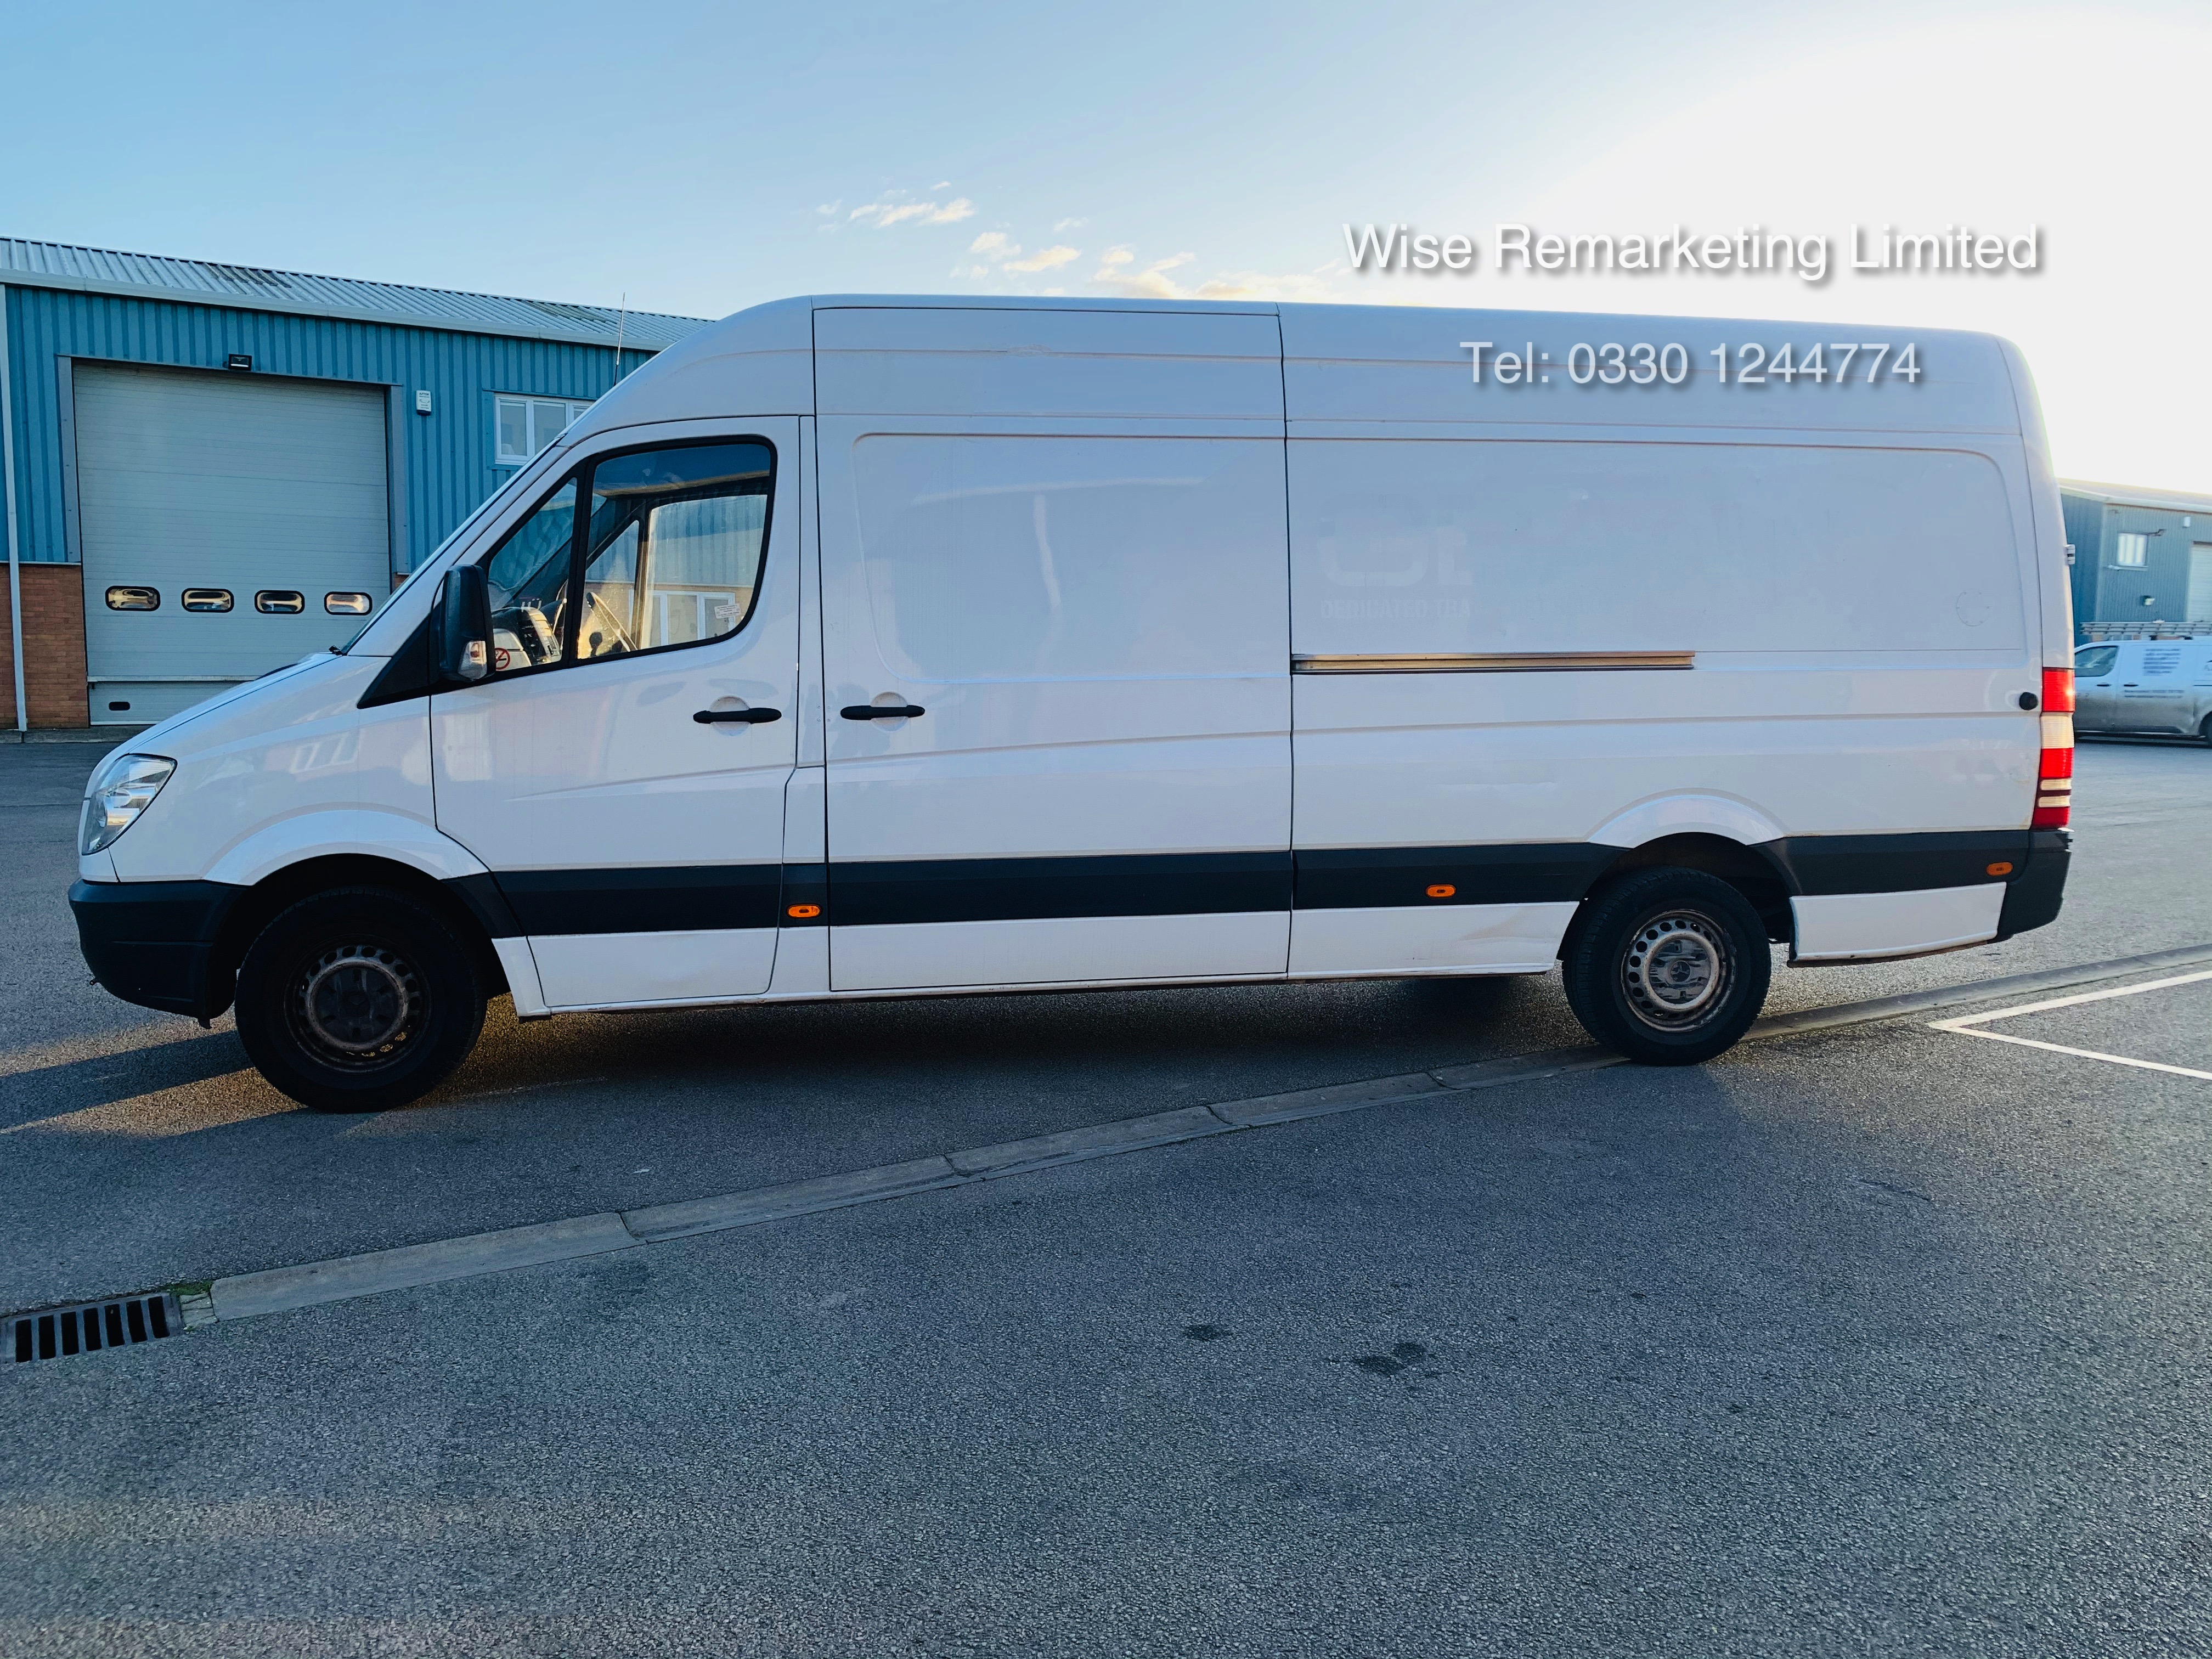 Mercedes Sprinter 316 2.1 CDI Long Wheel Base High Roof Van - 2013 13 Reg - 1 Owner From New - Image 8 of 20